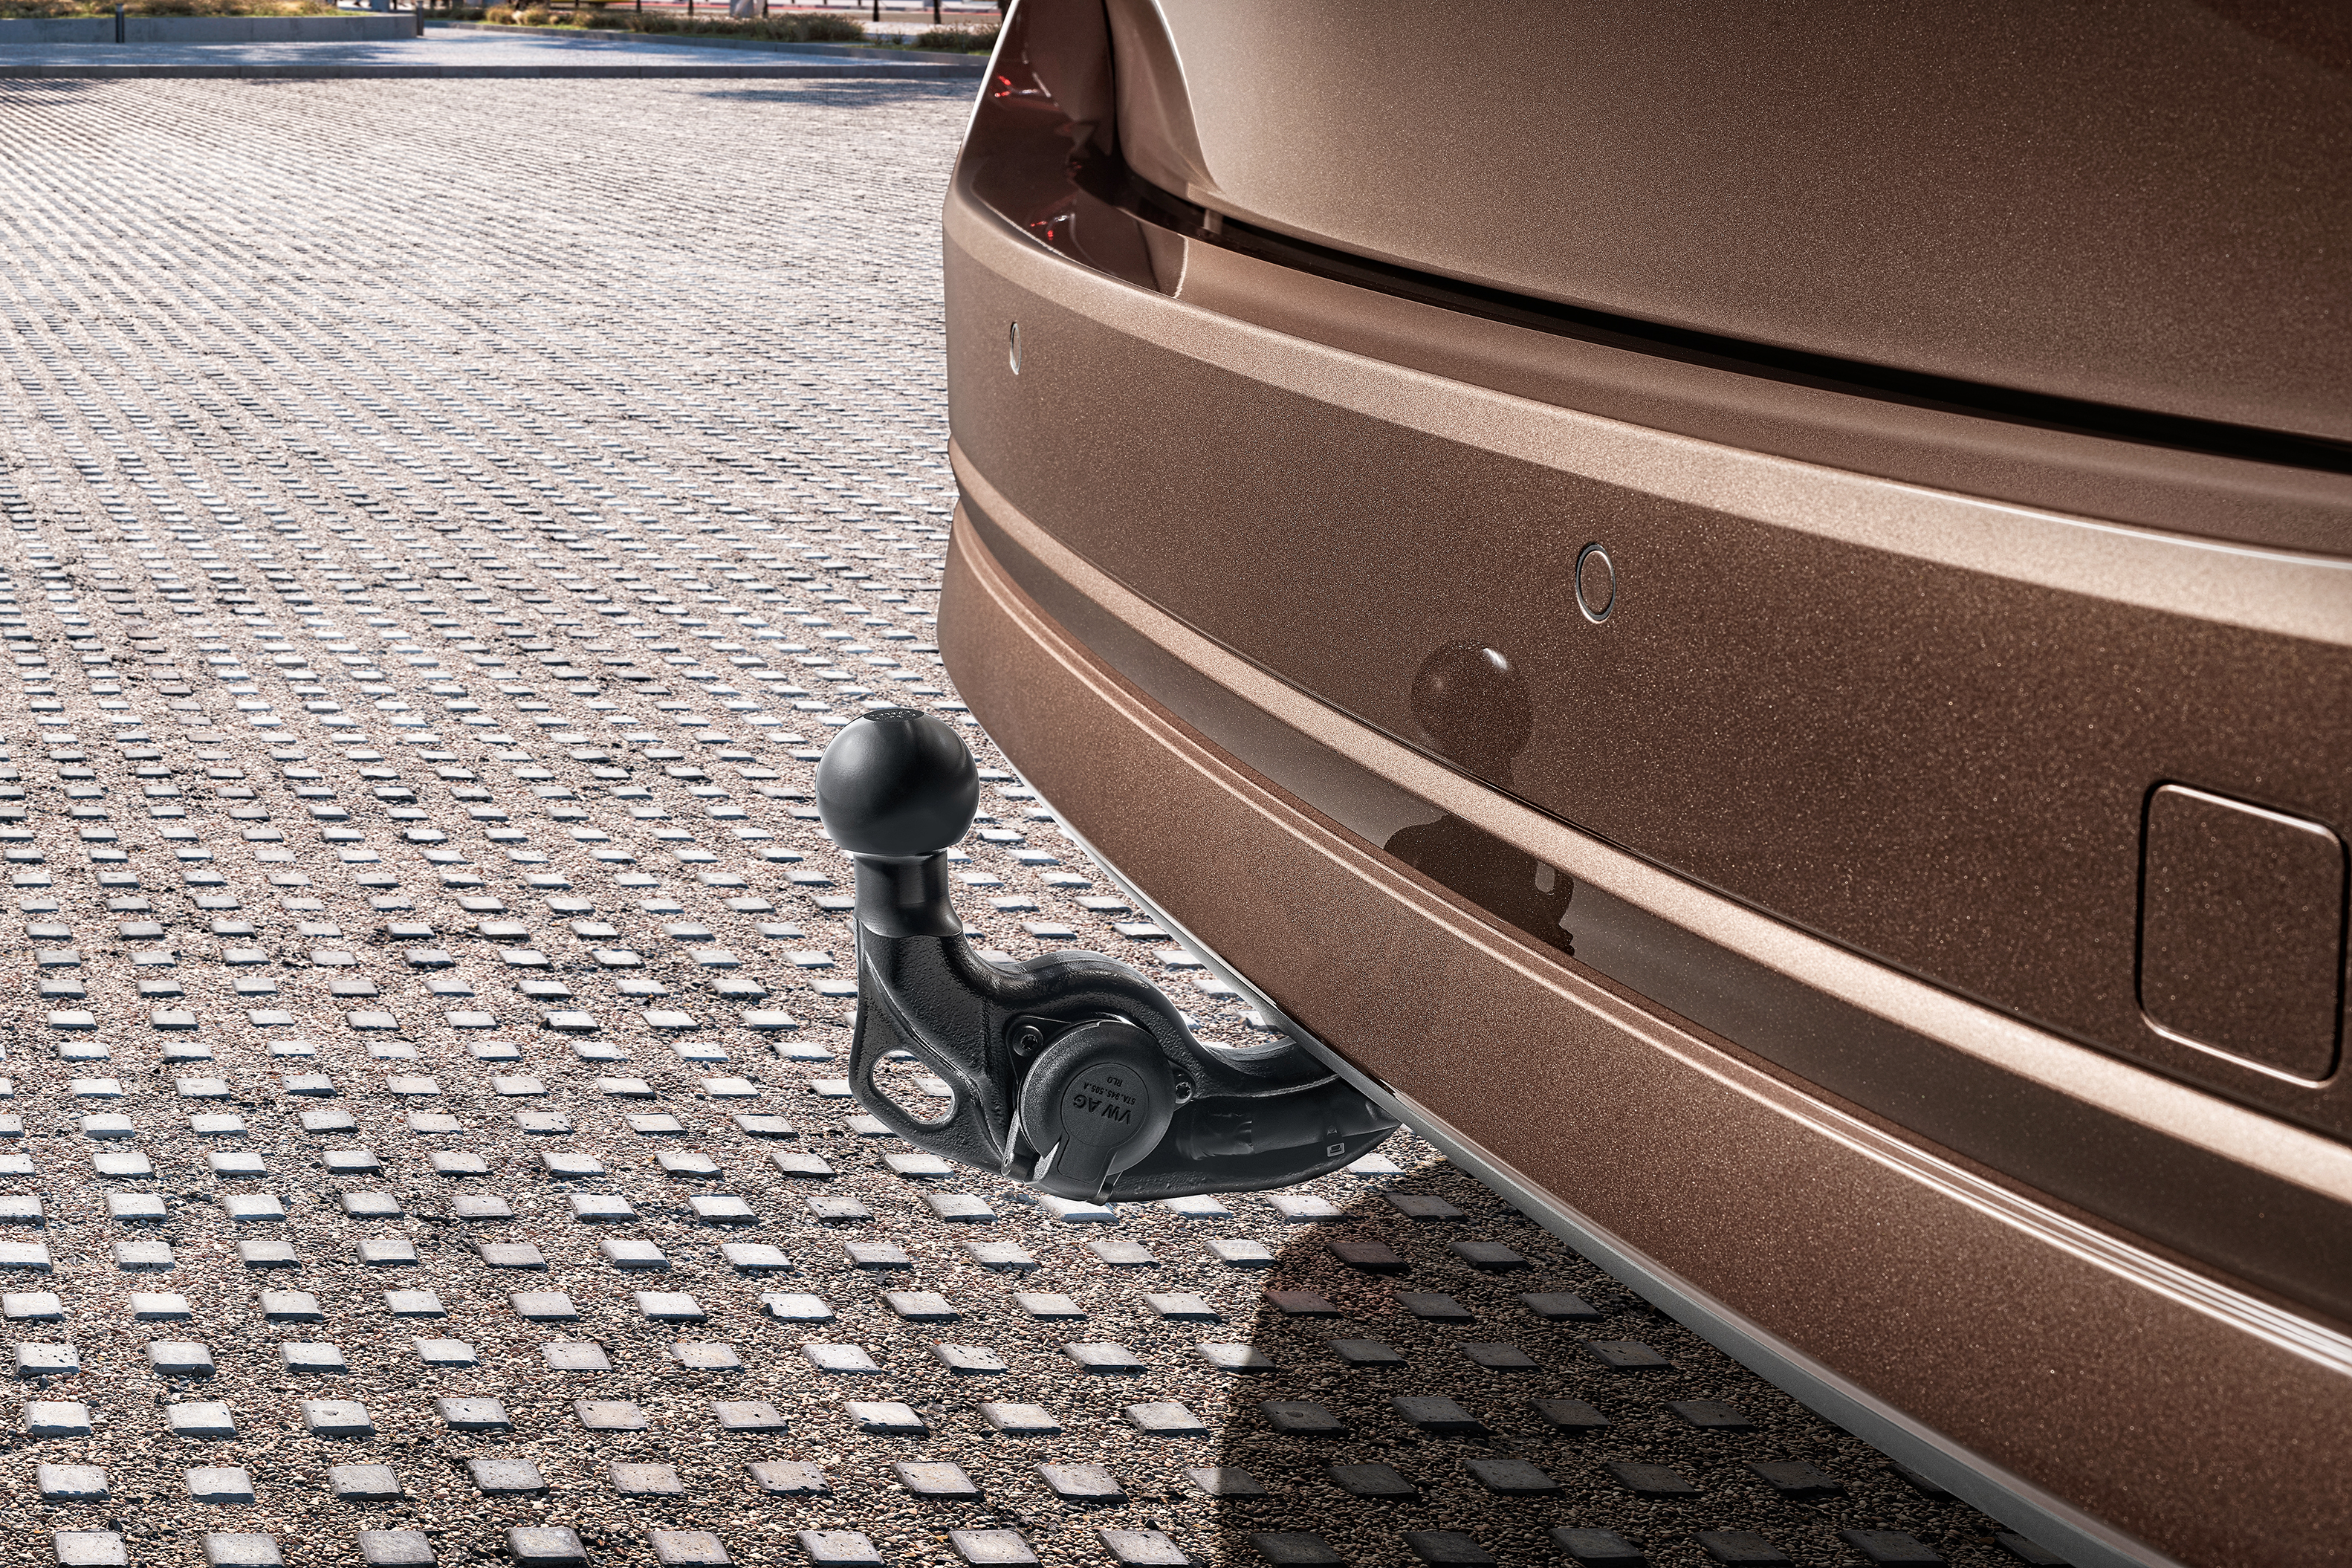 SKODA's clever luggage solutions for travel and leisure - Image 1